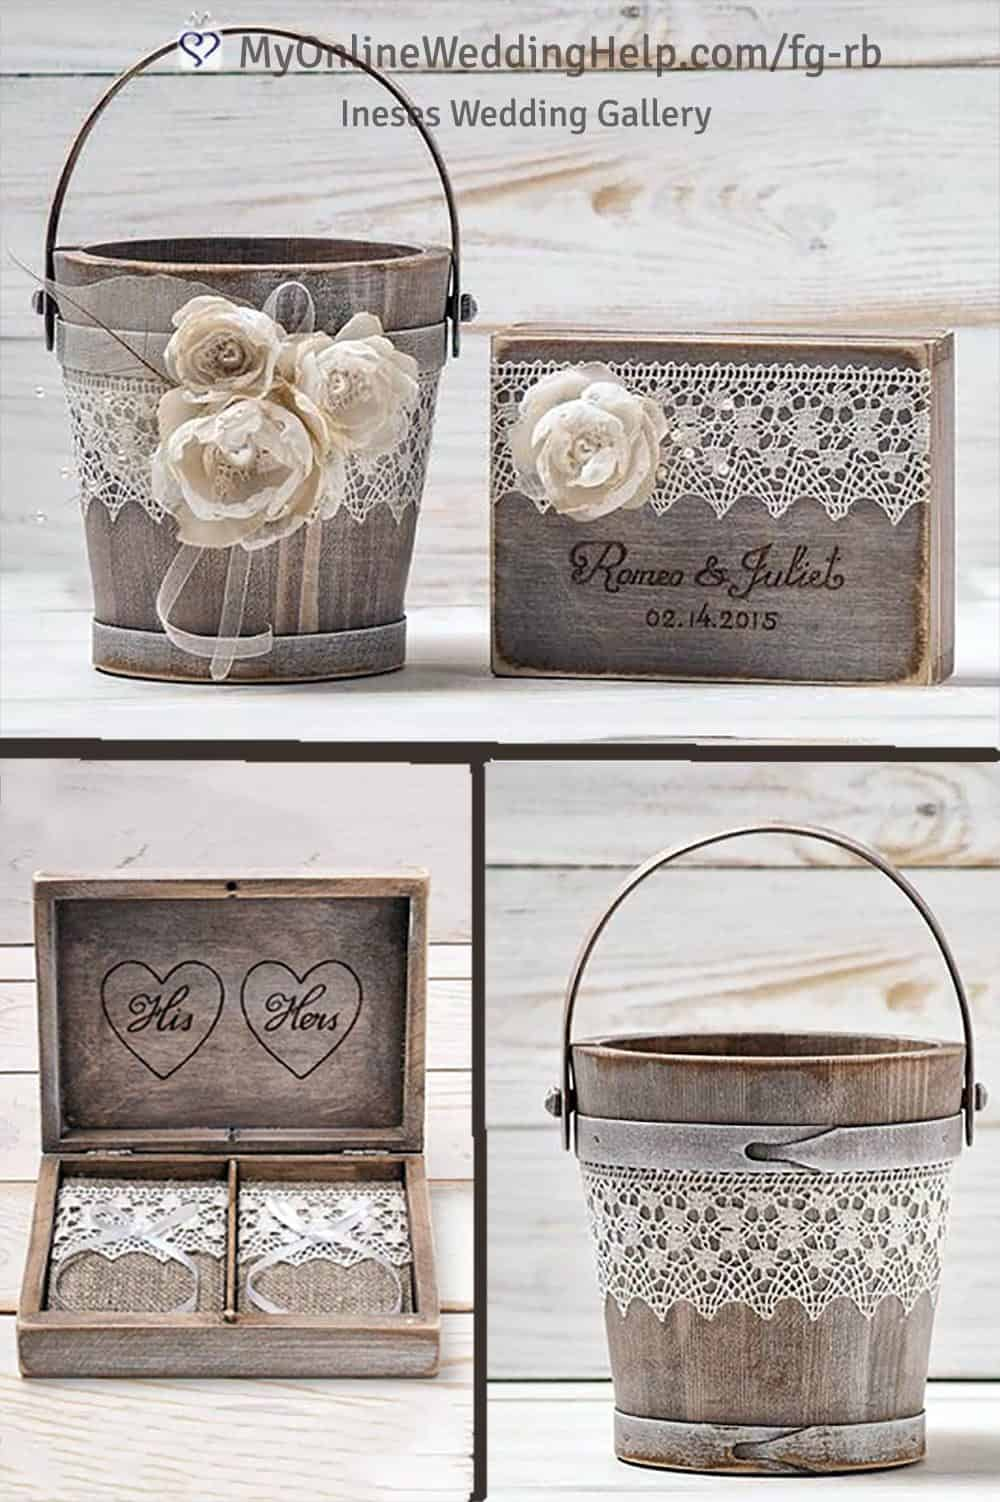 Rustic wood flower girl pail and ring bearer box. With lace and flower decorations. Learn more of buy in the My Online Wedding Help products section. 99.97 together. Basket only for around $48. Box only for about $51.